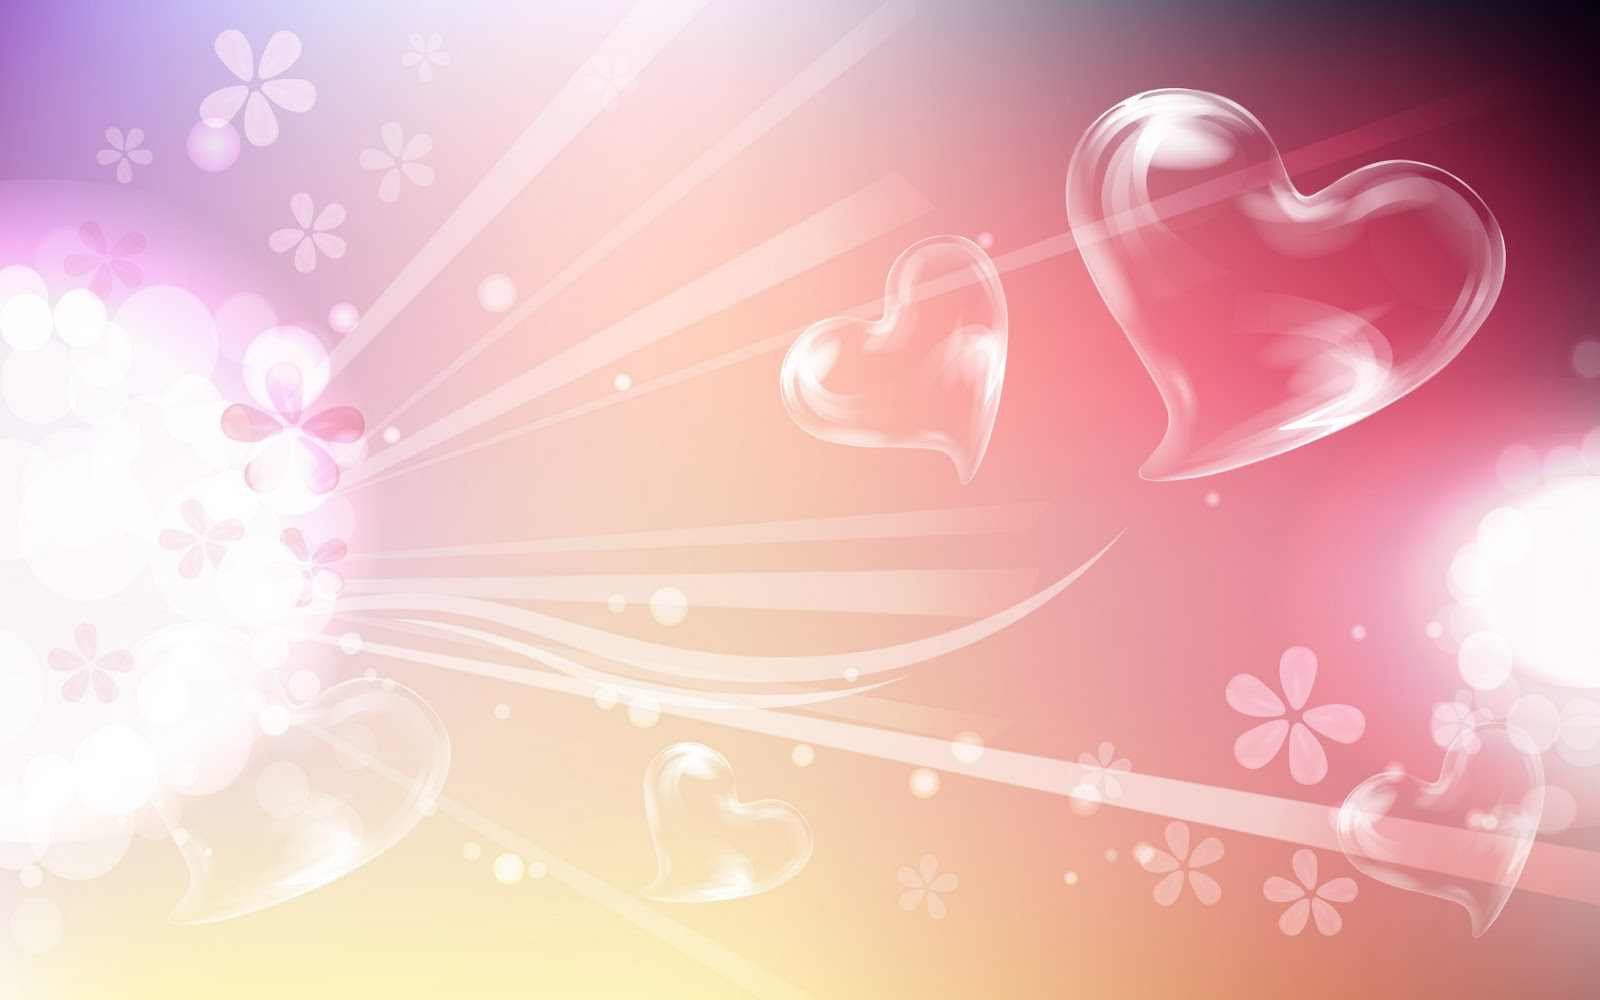 Single Girl Love Wallpaper : Stunning Love Backgrounds 18162 1600x1000 px ~ HDWallSource.com